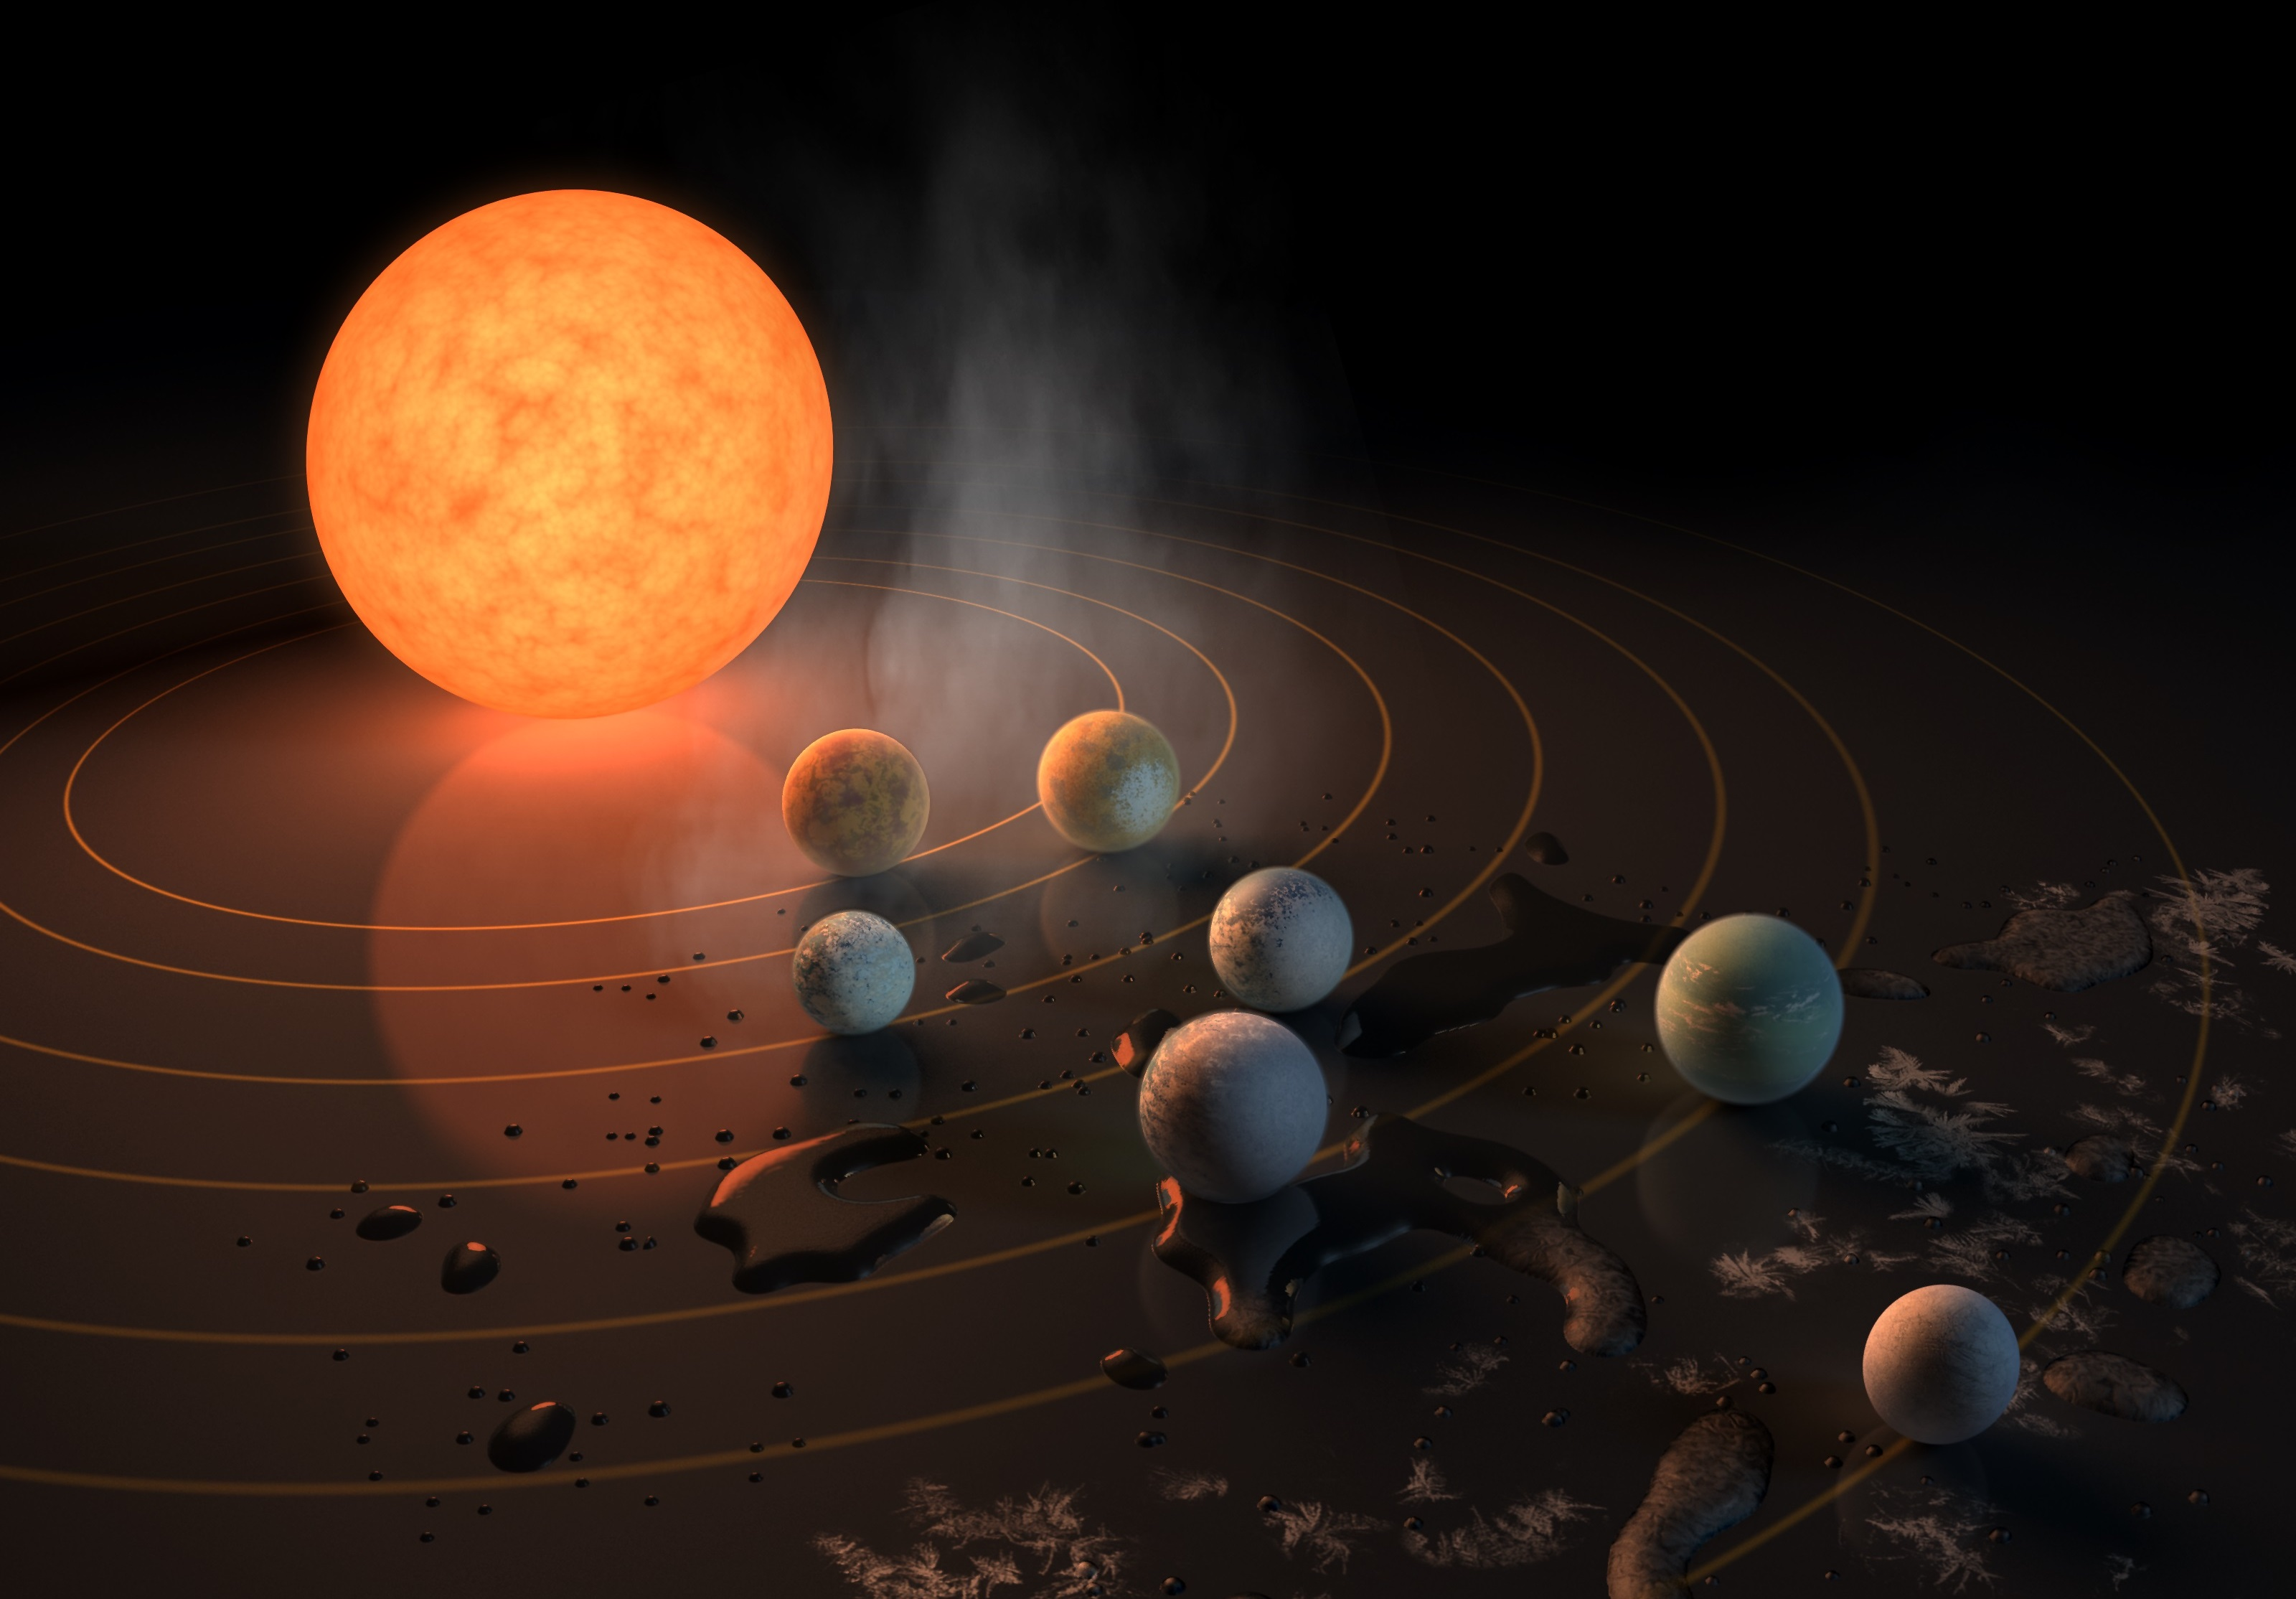 Local astronomer sheds light on newly discovered planets